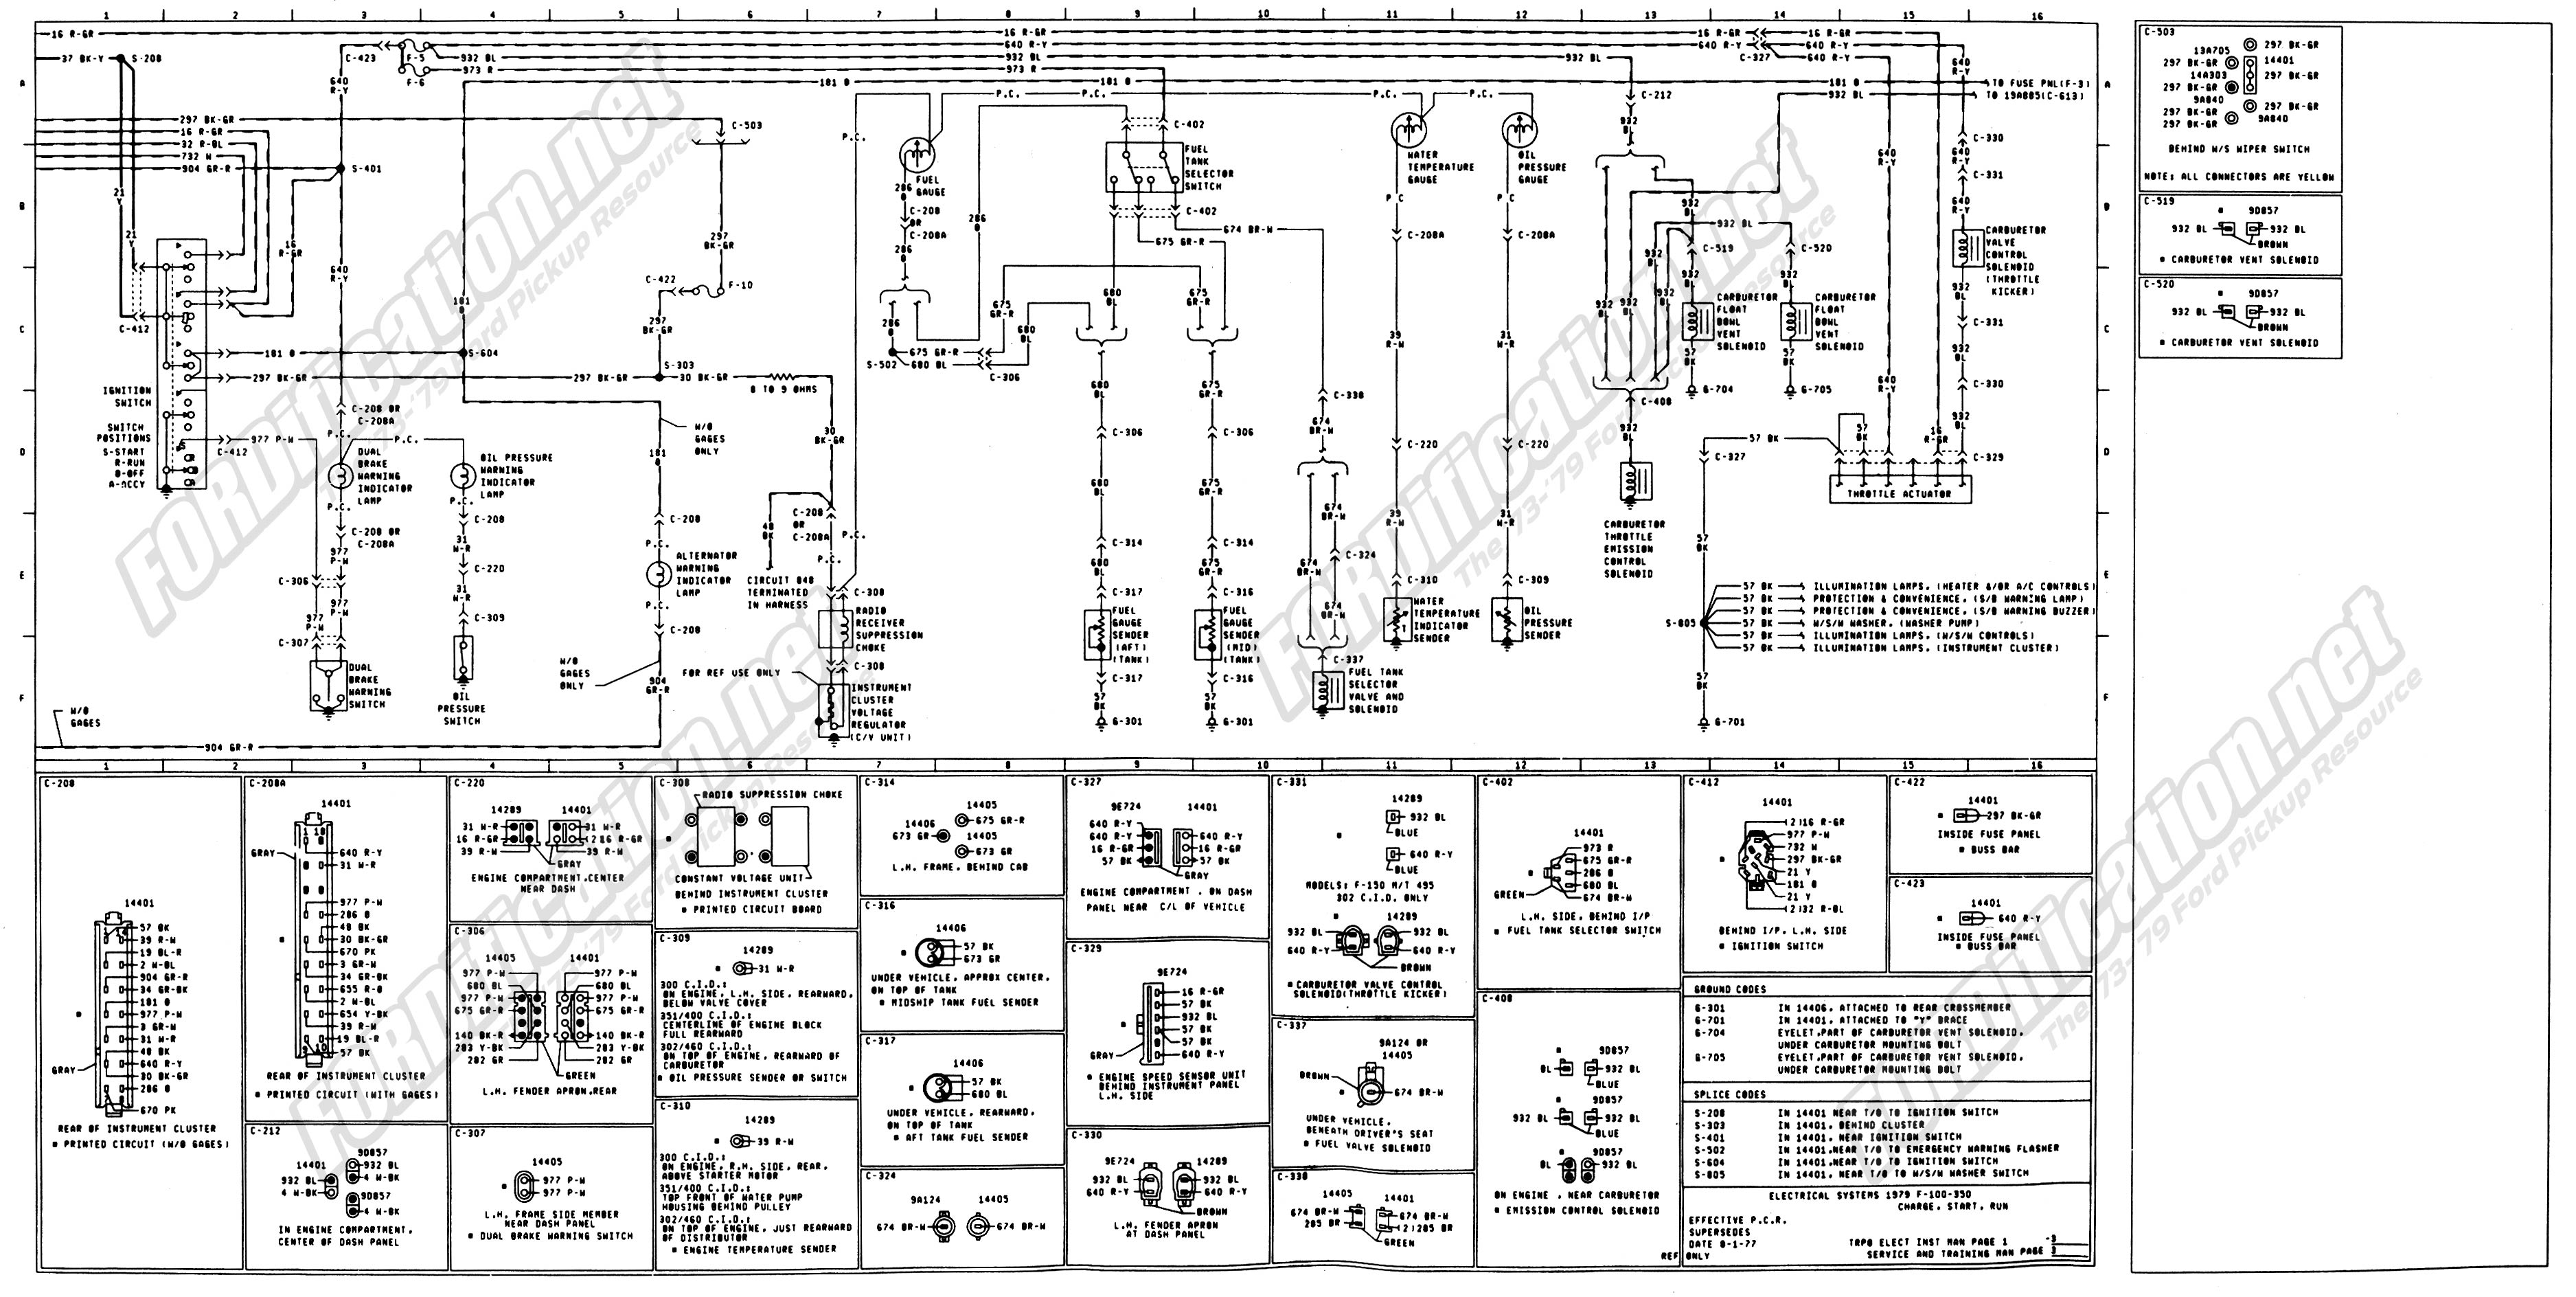 1973 1979 ford truck wiring diagrams schematics fordification net rh fordification net Ford F-250 Wiring Diagram Ford Wiring Harness Diagrams